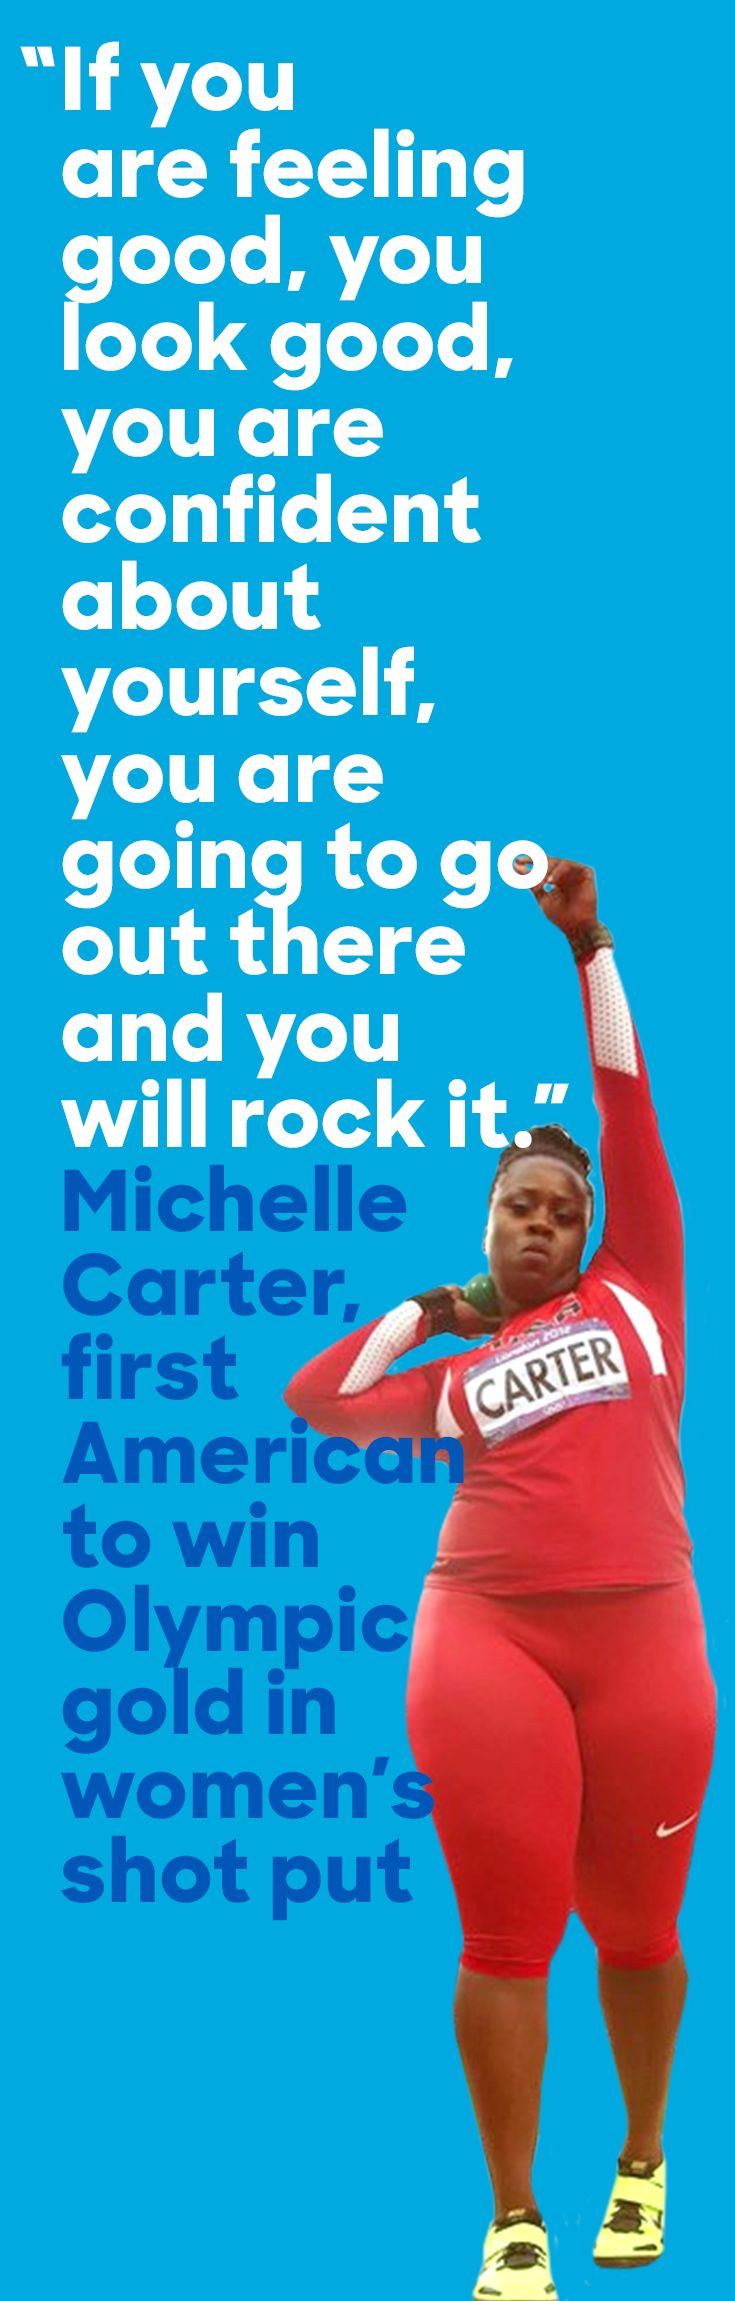 Michelle Carter made Olympic history in the women's shot put, earning Team USA's…